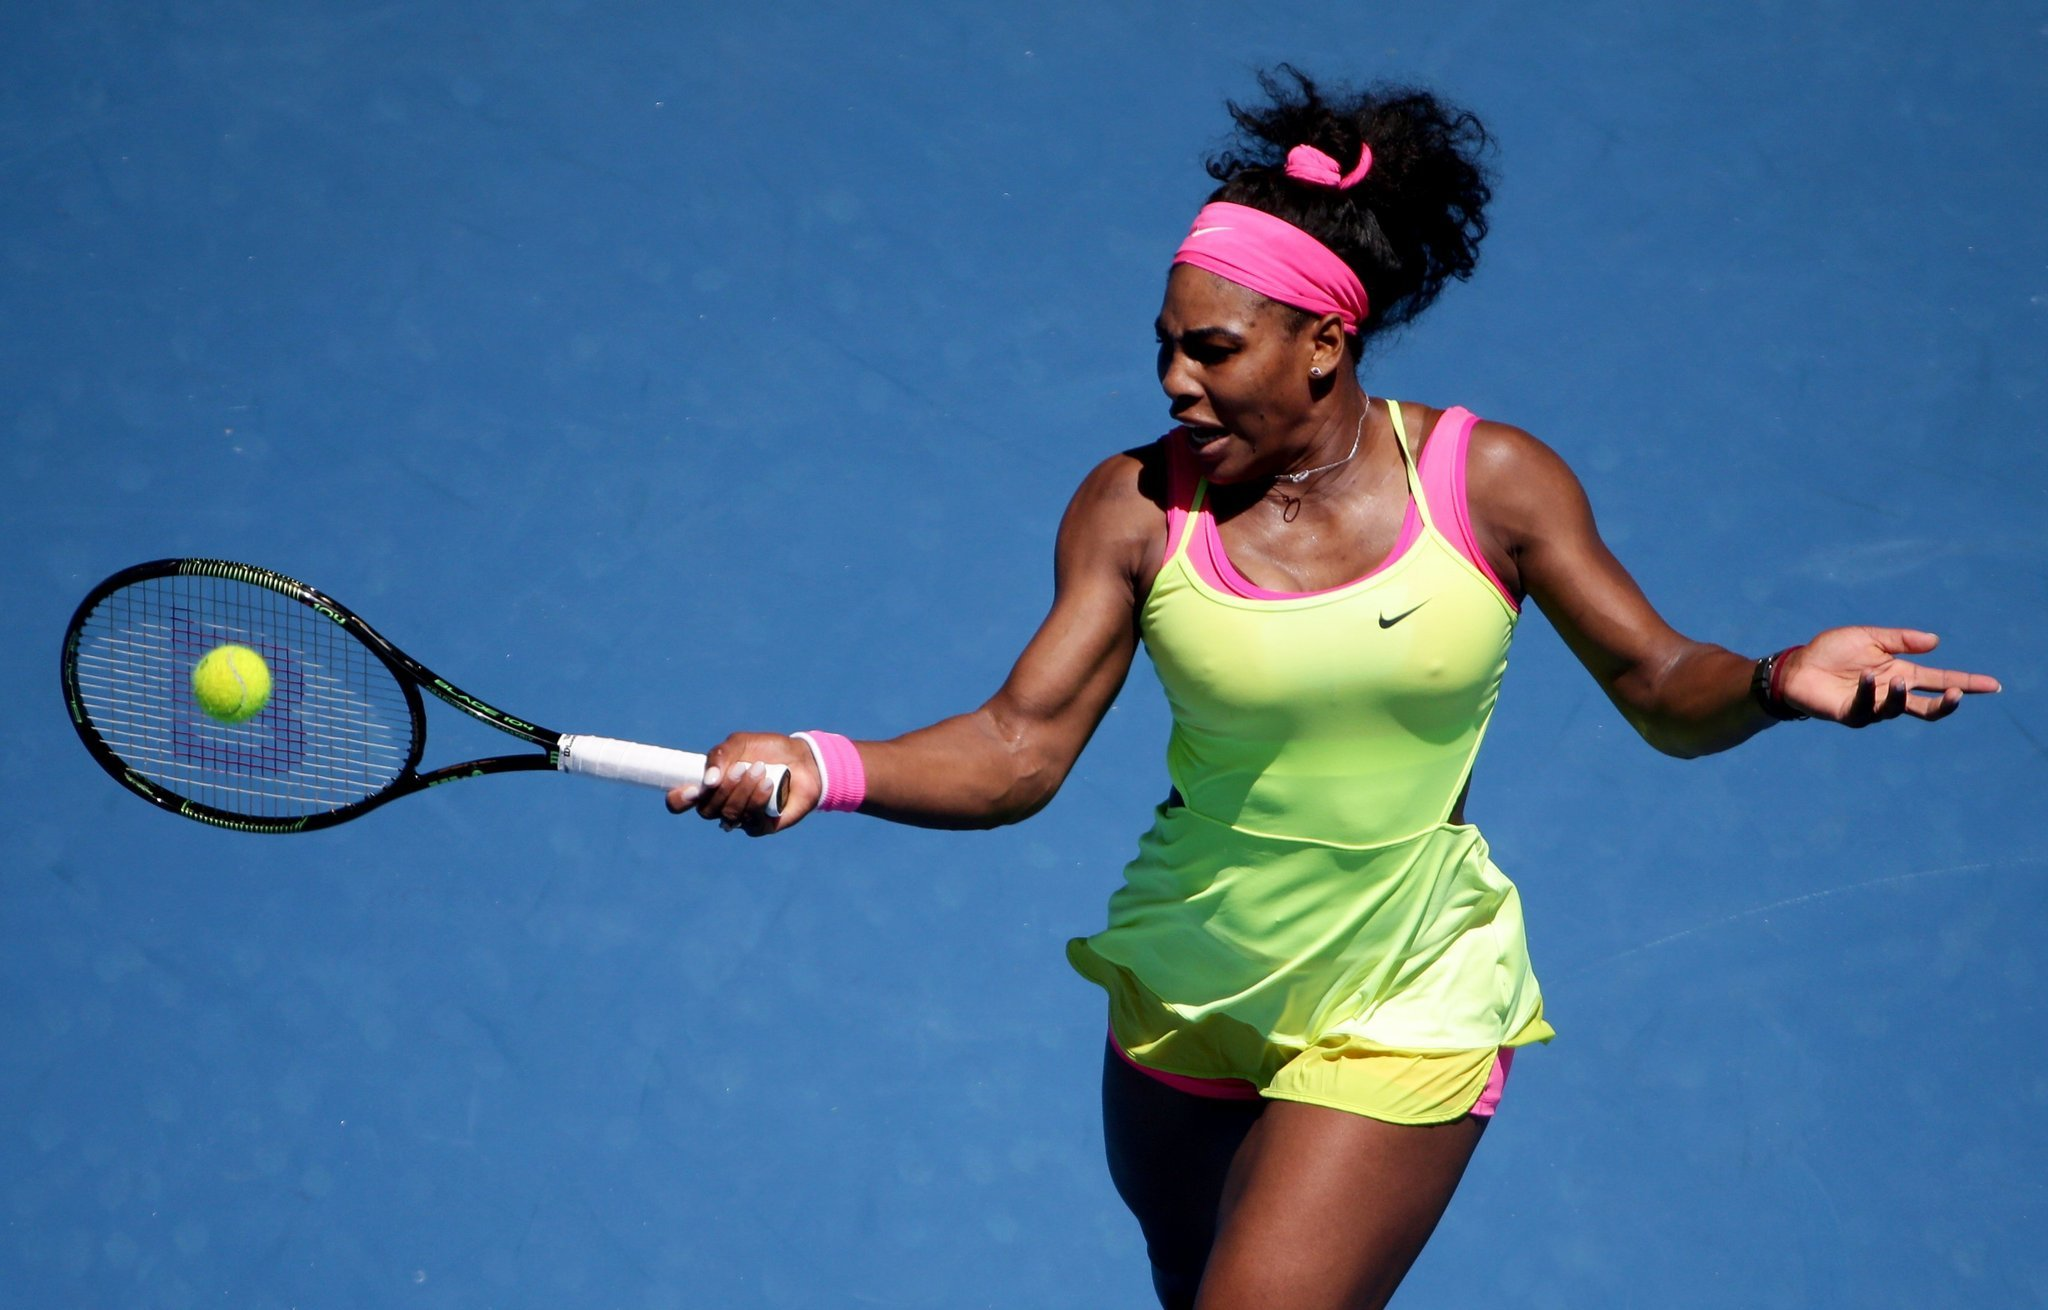 Wimbledon Williams Sisters Wow >> Serena Williams Gets Inspiration From Sister Venus To Advance At